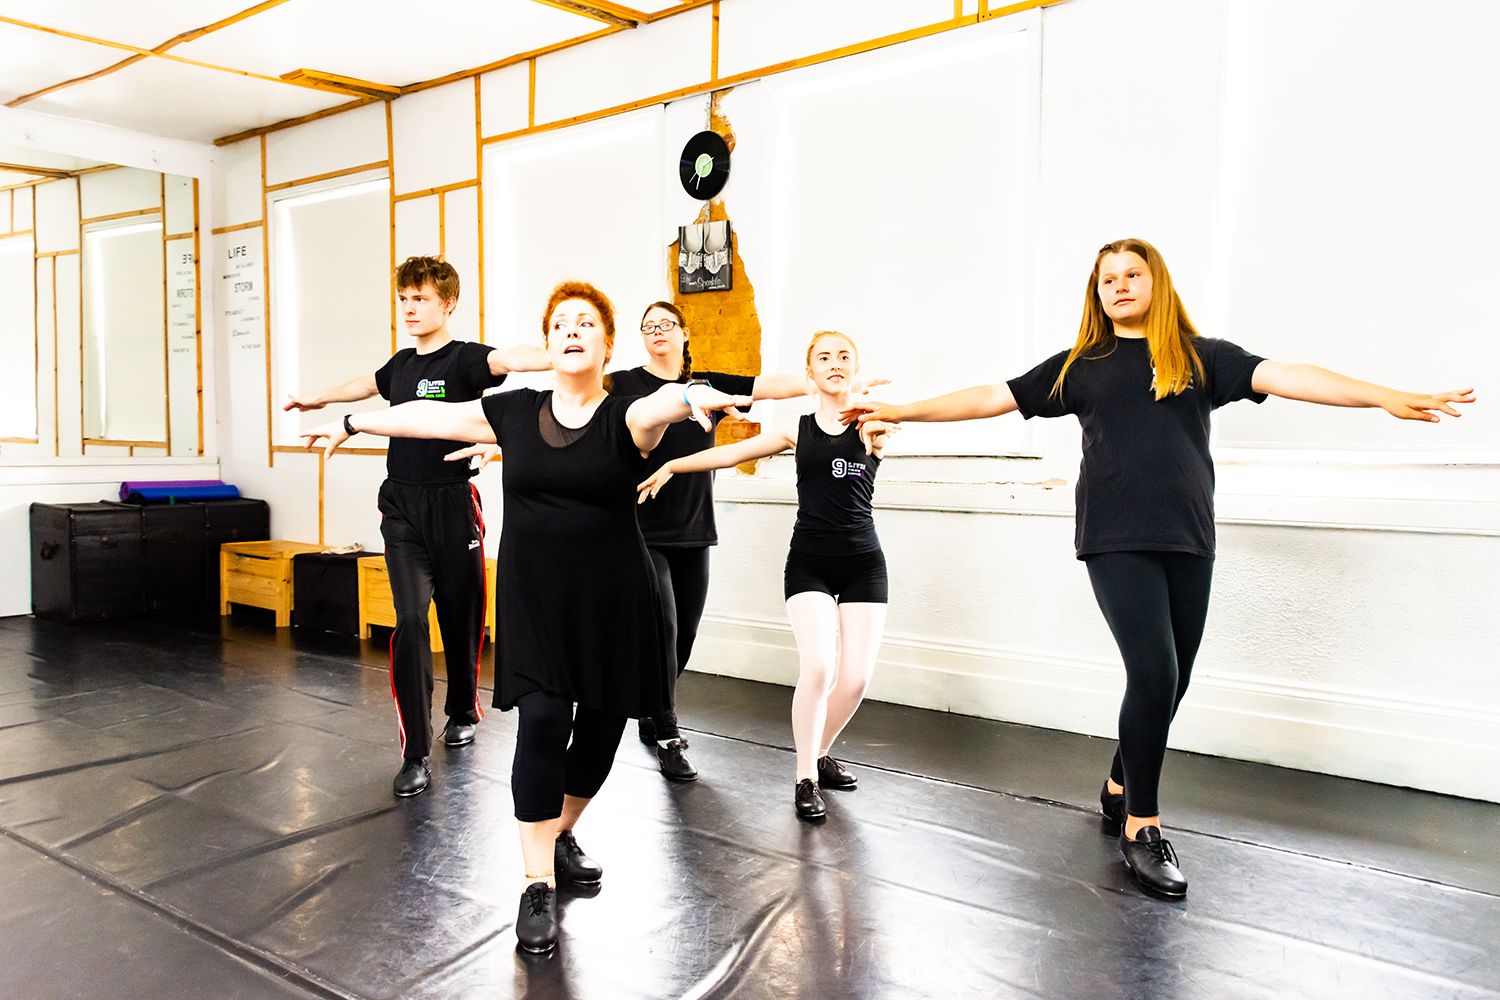 Nine Lives Theatre Company contemporary dancers in the practising their tap.